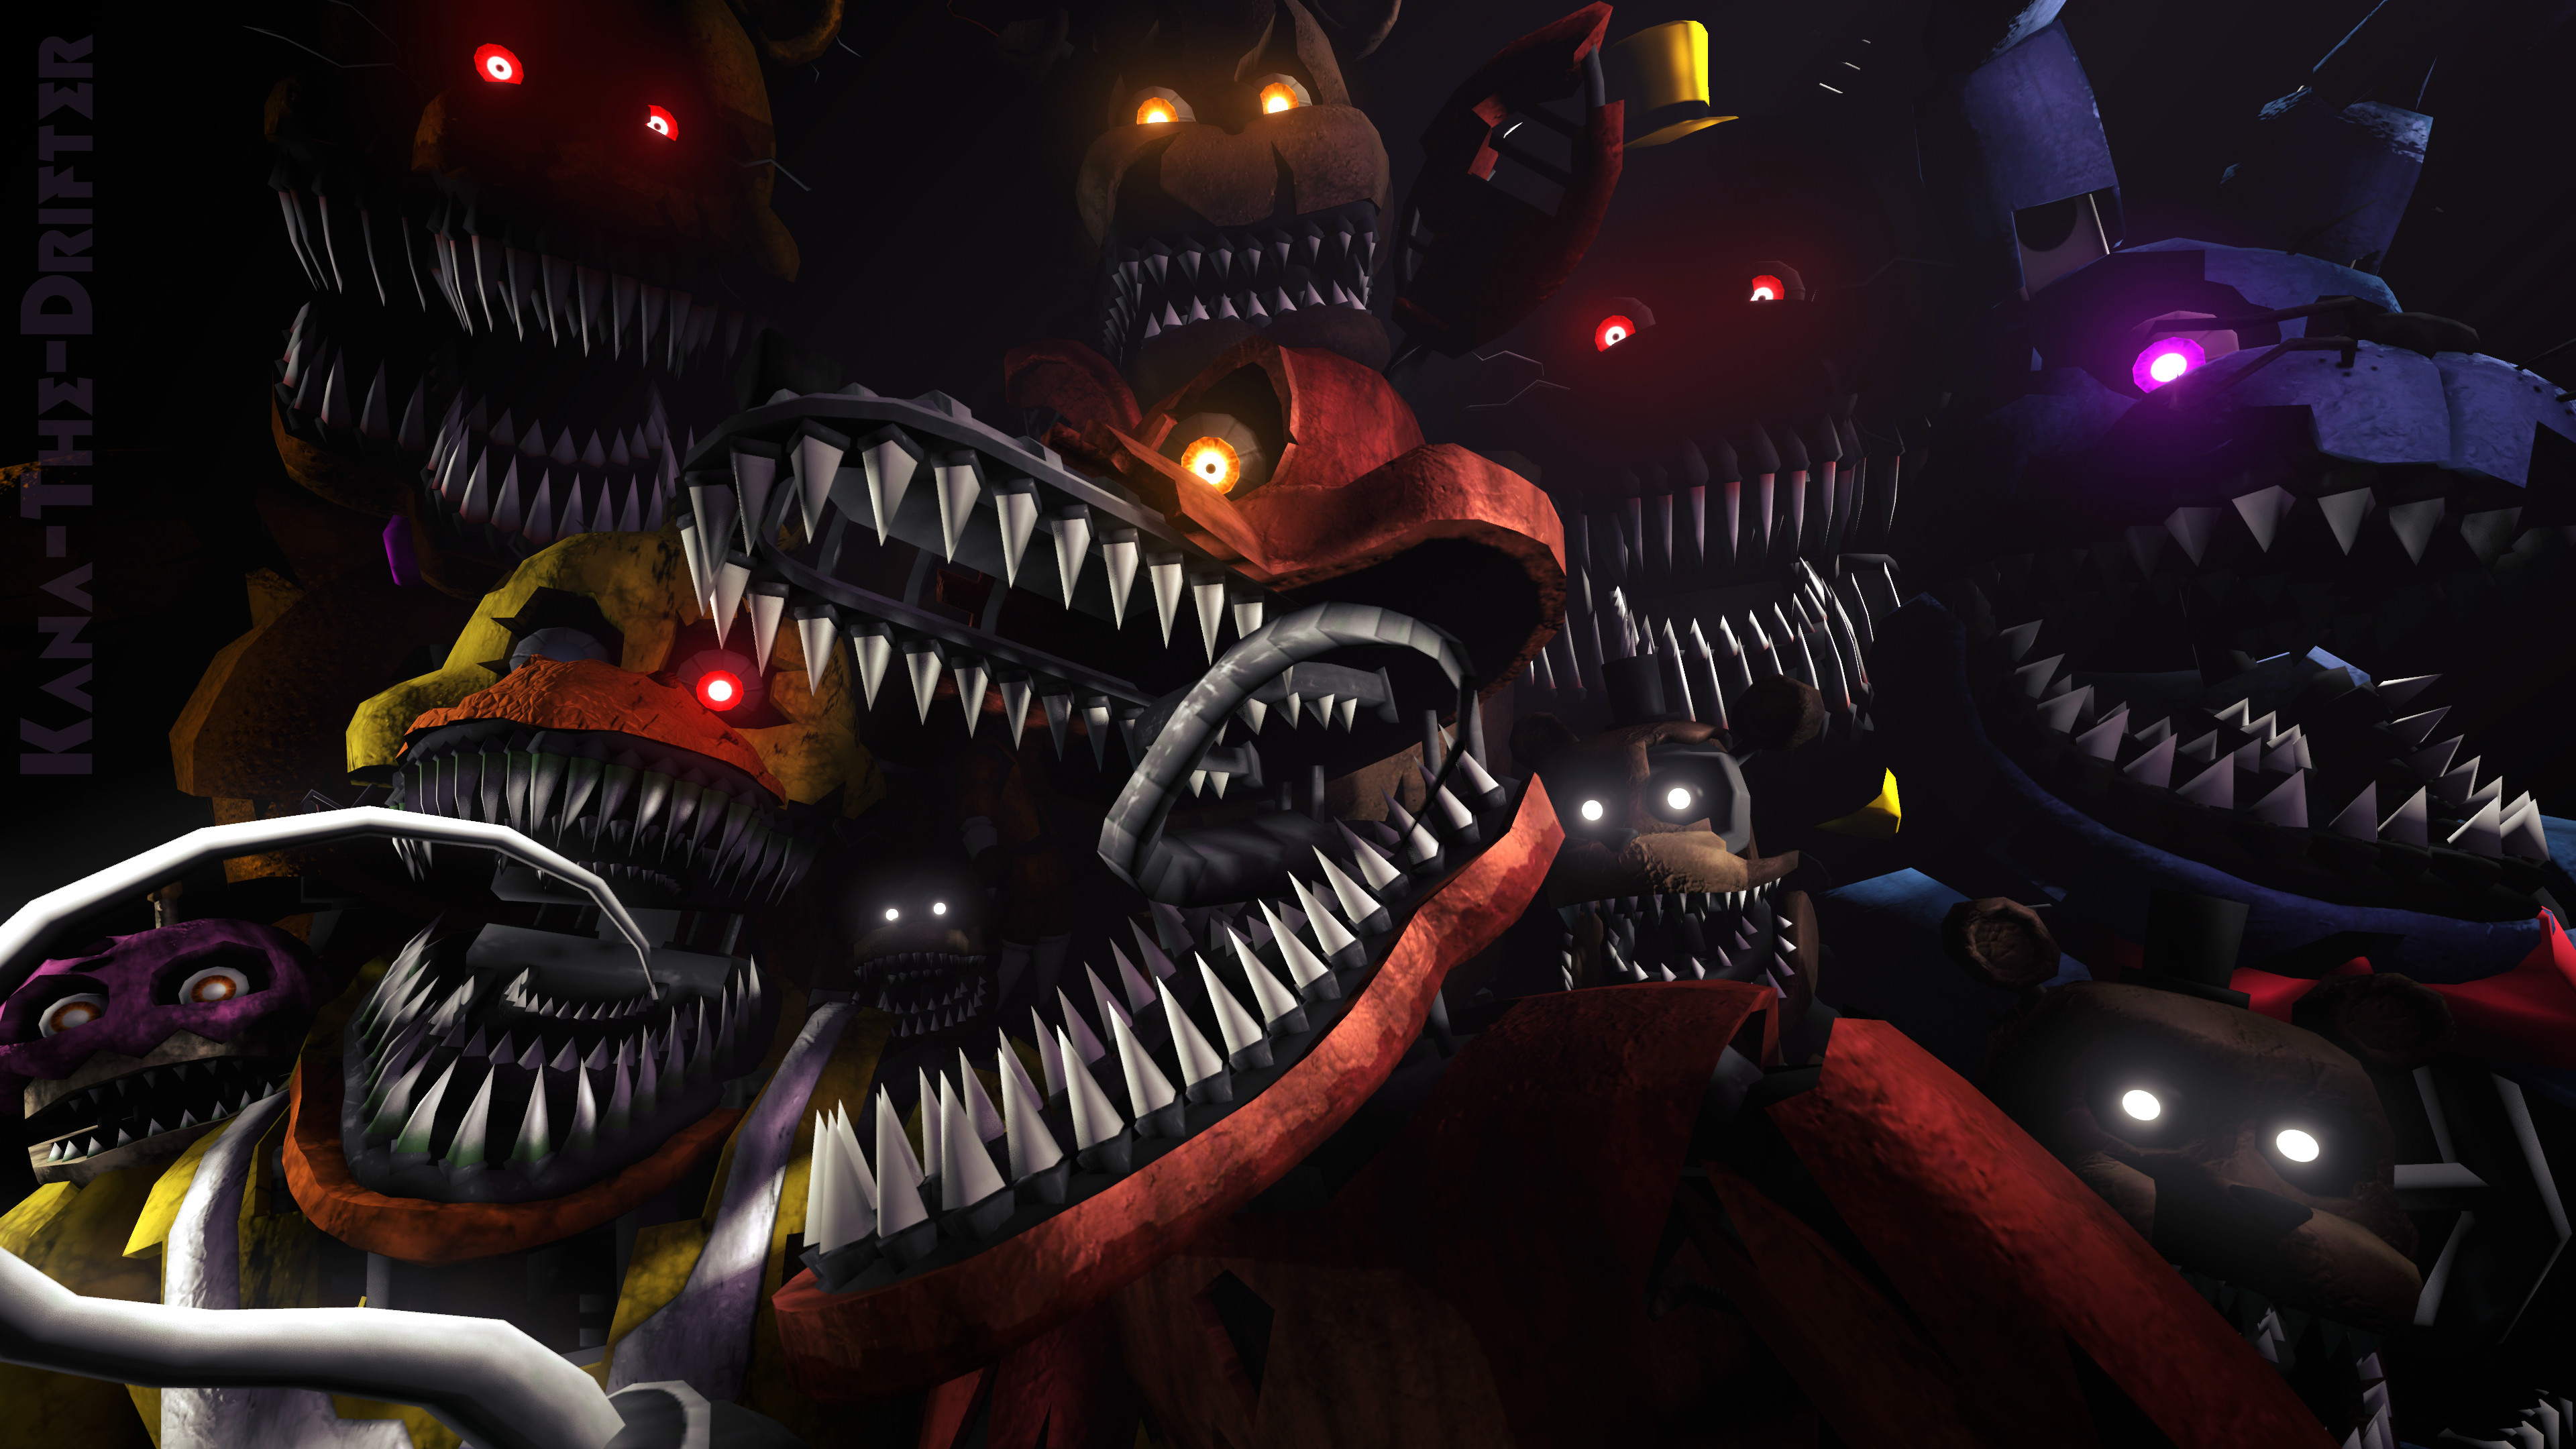 3840x2160 We'll Stay Here Forever (FNAF SFM Wallpaper) by Kana-The-